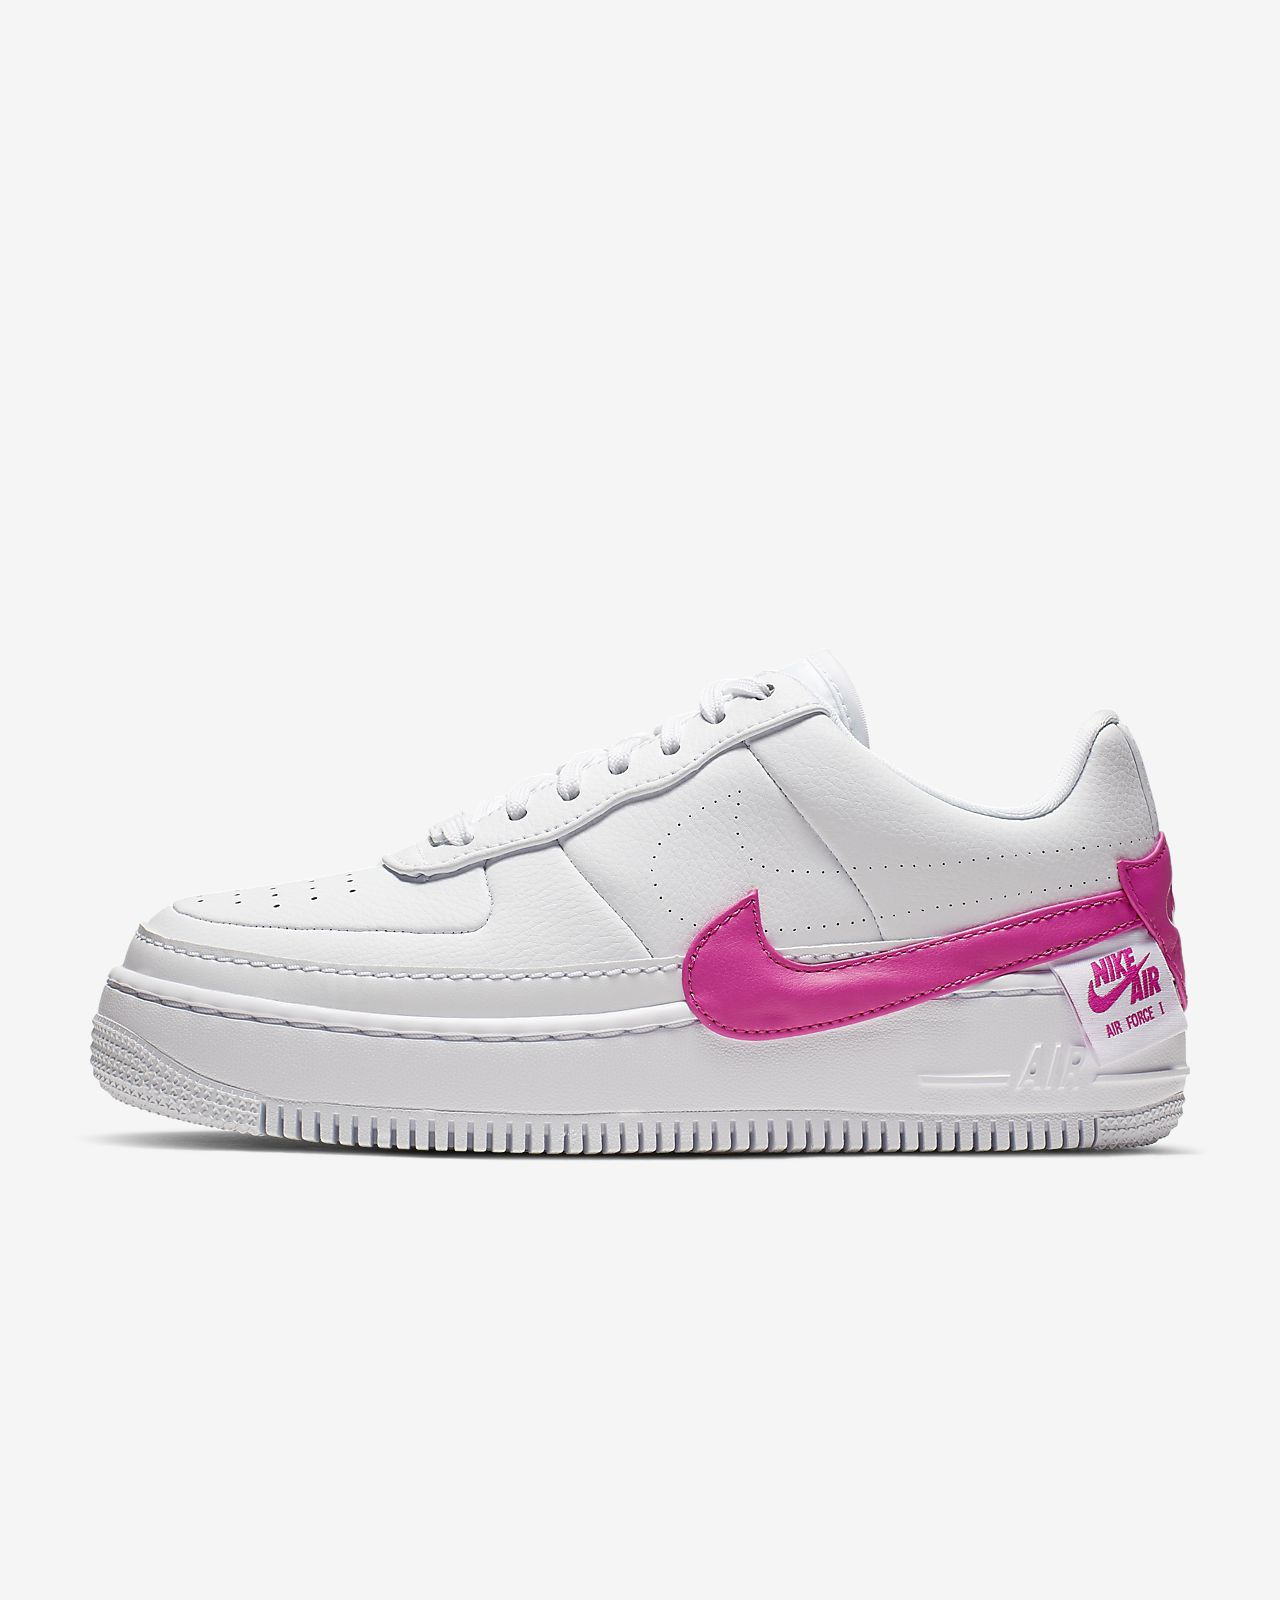 nike air force 1 con baffo rosa